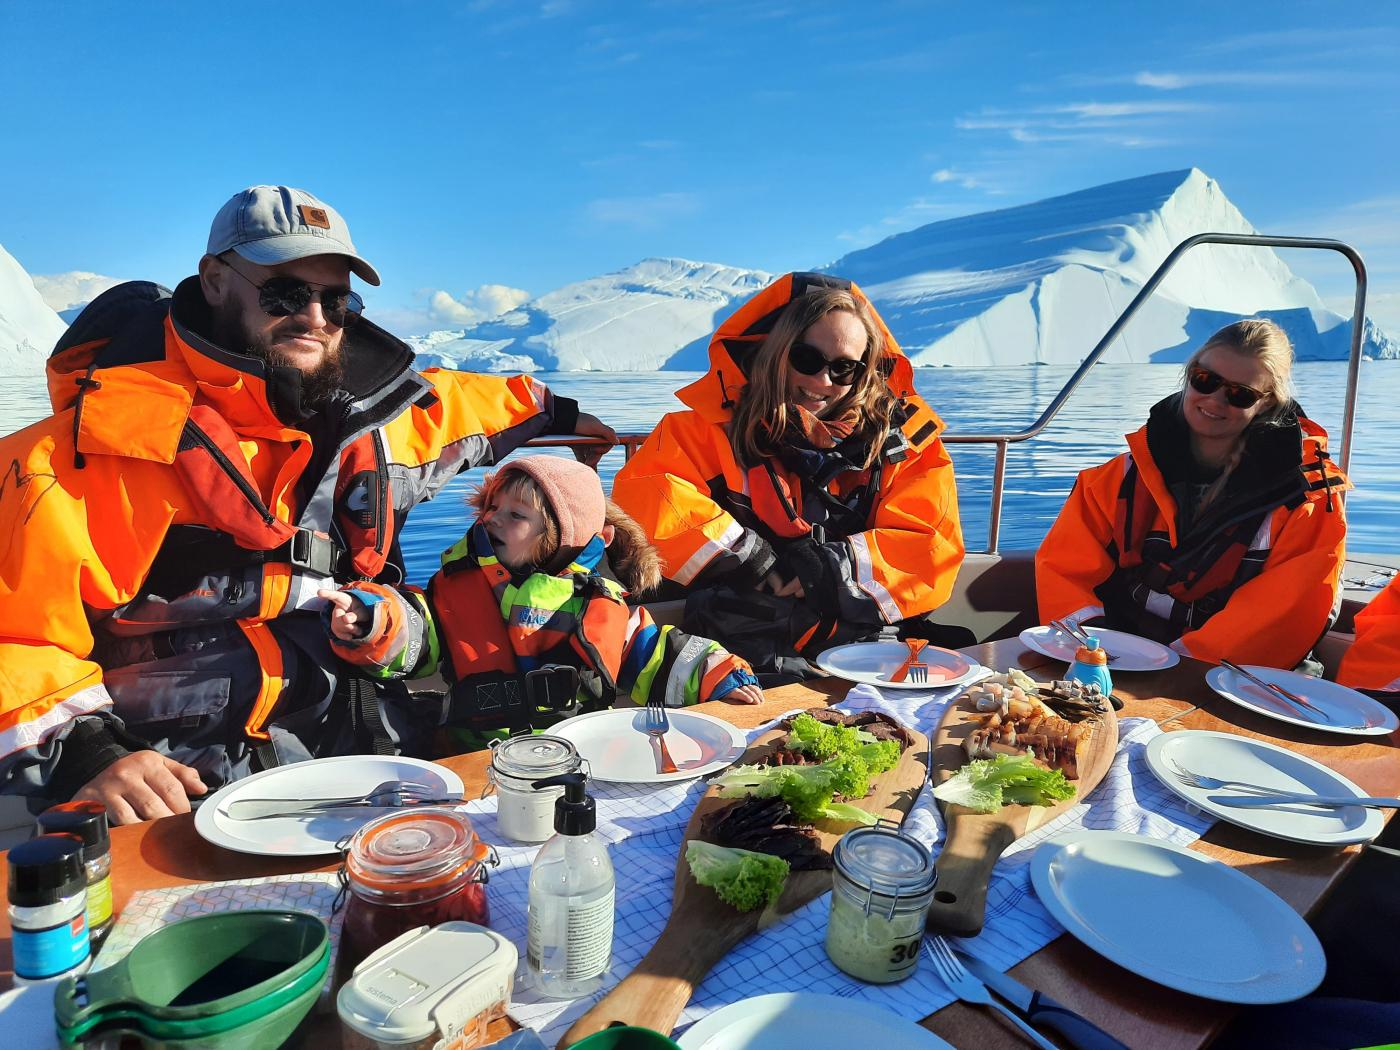 Nuumit frokost på isfjorden. Photo by Ilulissat Adventure